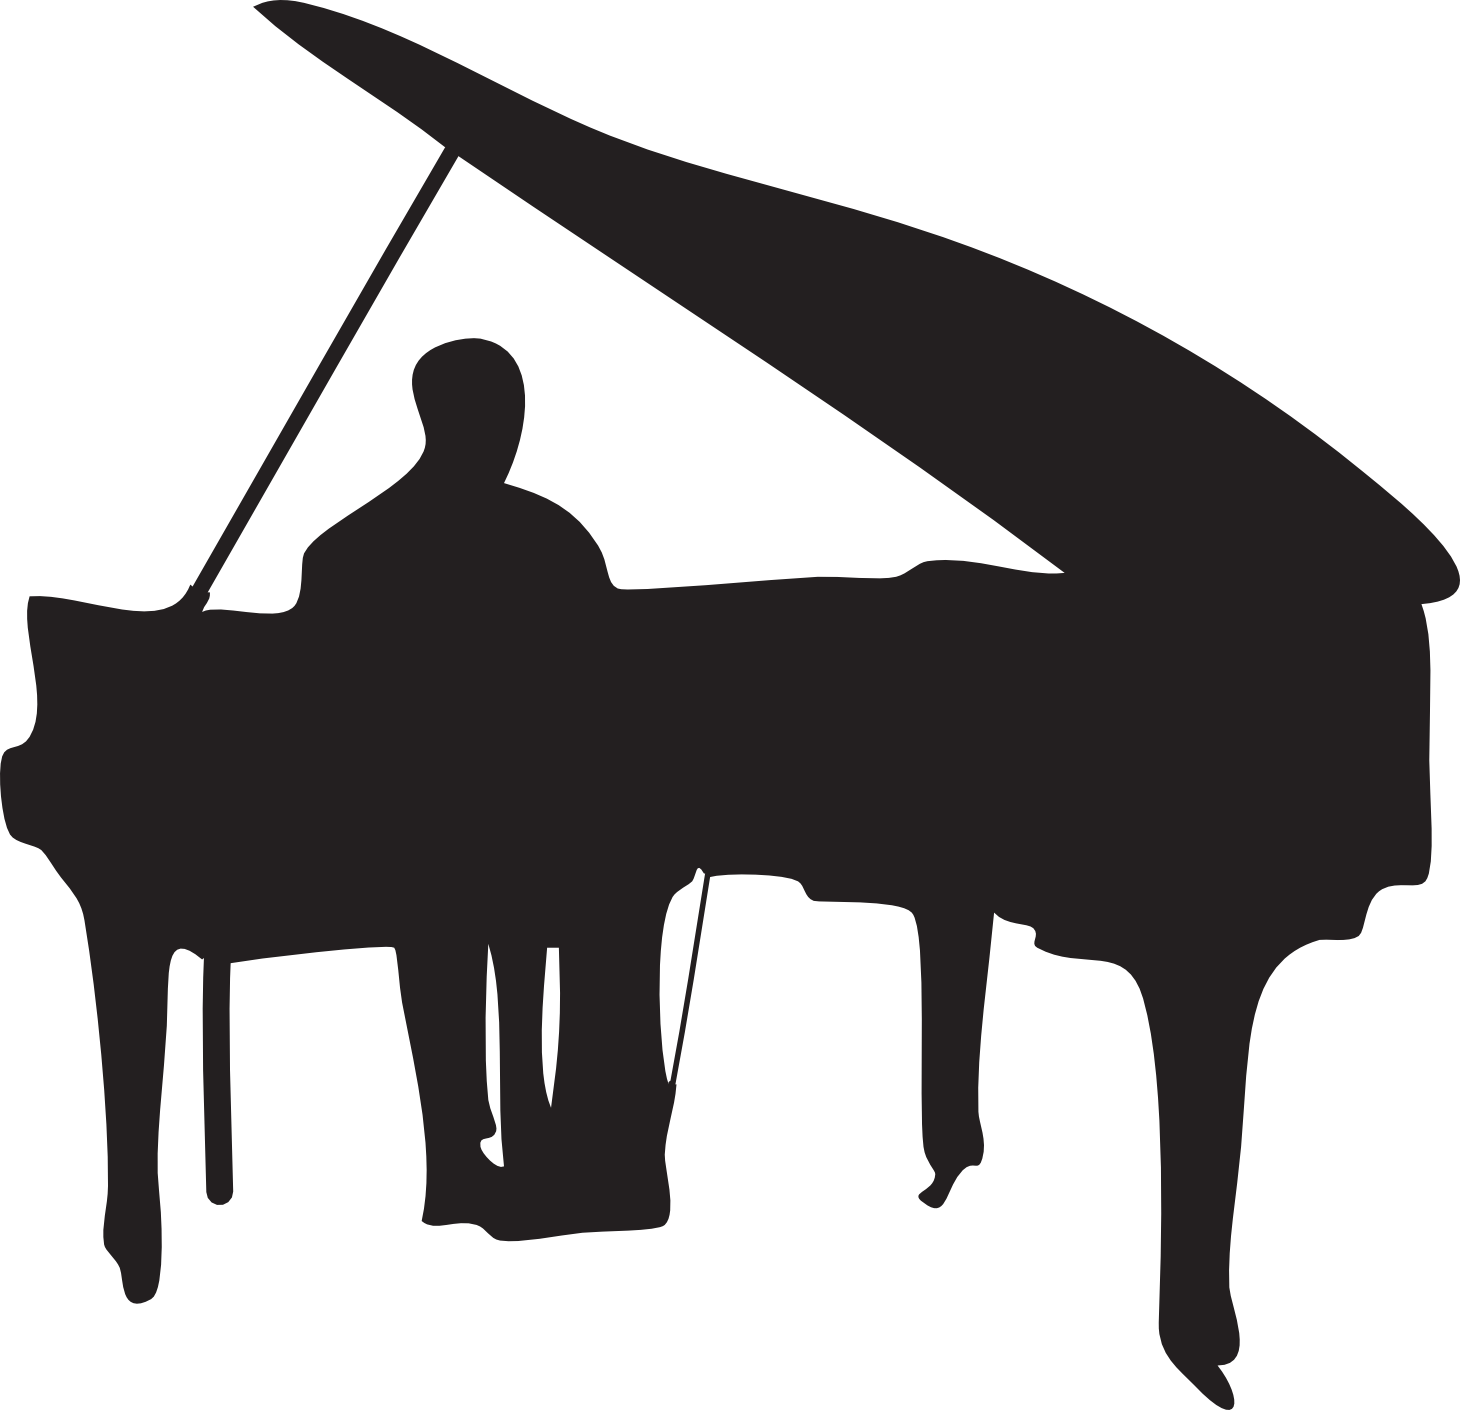 Grand player png download. Jazz clipart jazz piano